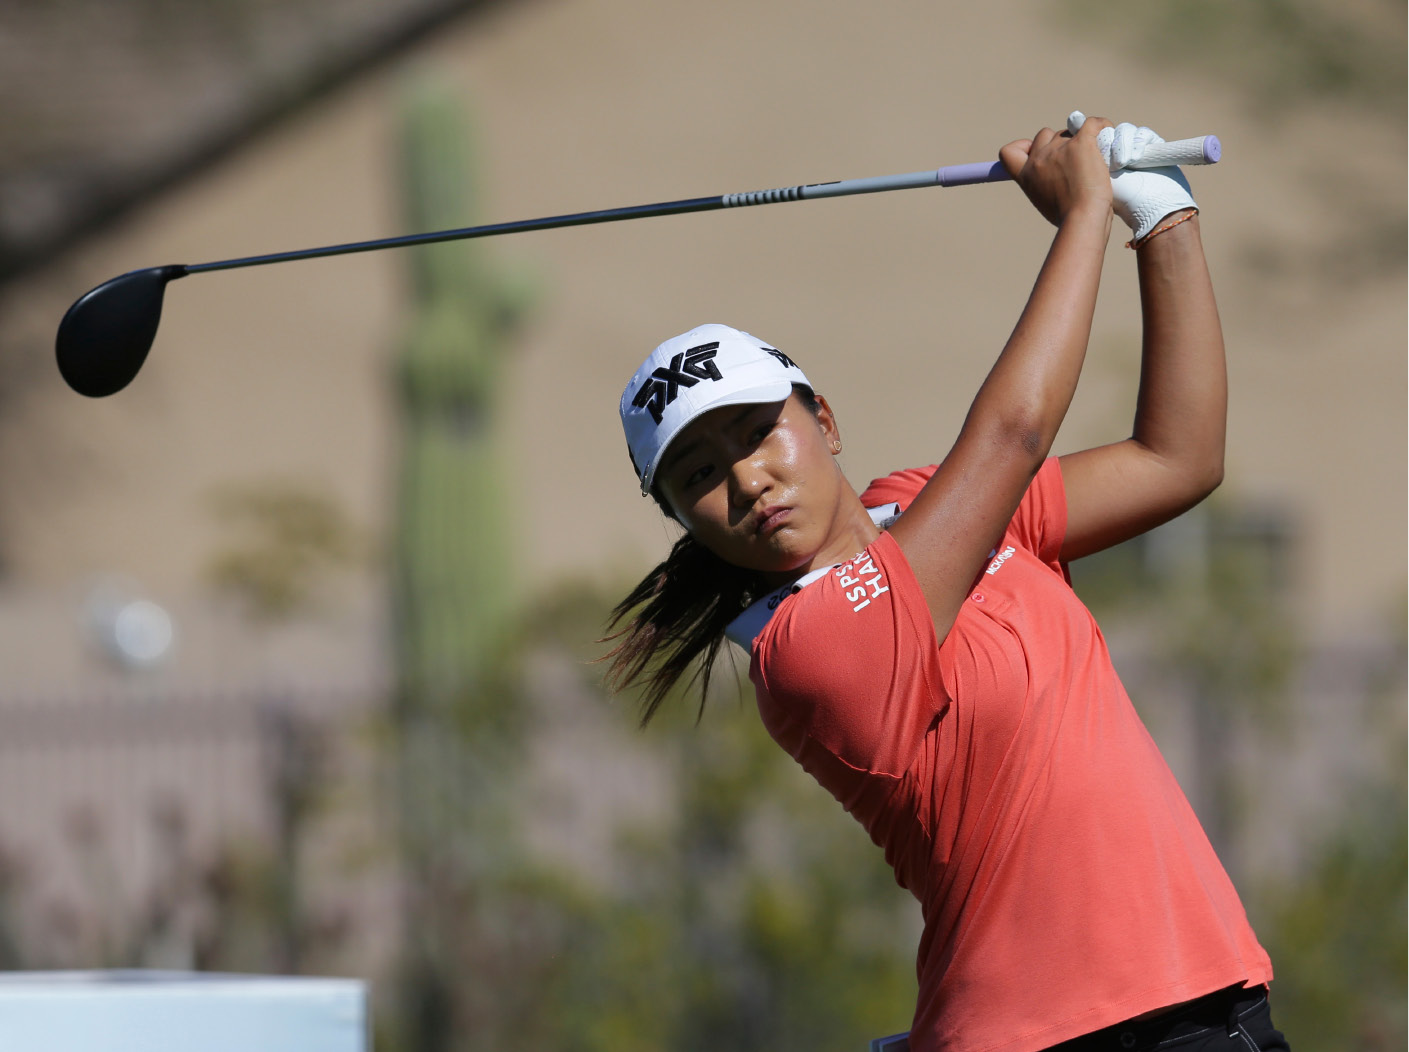 FILE - In this Sunday, March 19, 2017, file photo, Lydia Ko of New Zealand, tees of on the eighth tee during the final round of a LPGA golf tournament on in Phoenix. One tournament is the first major championship of the golf season. The other is all about getting ready for a major. (AP Photo/Rick Scuteri, File)